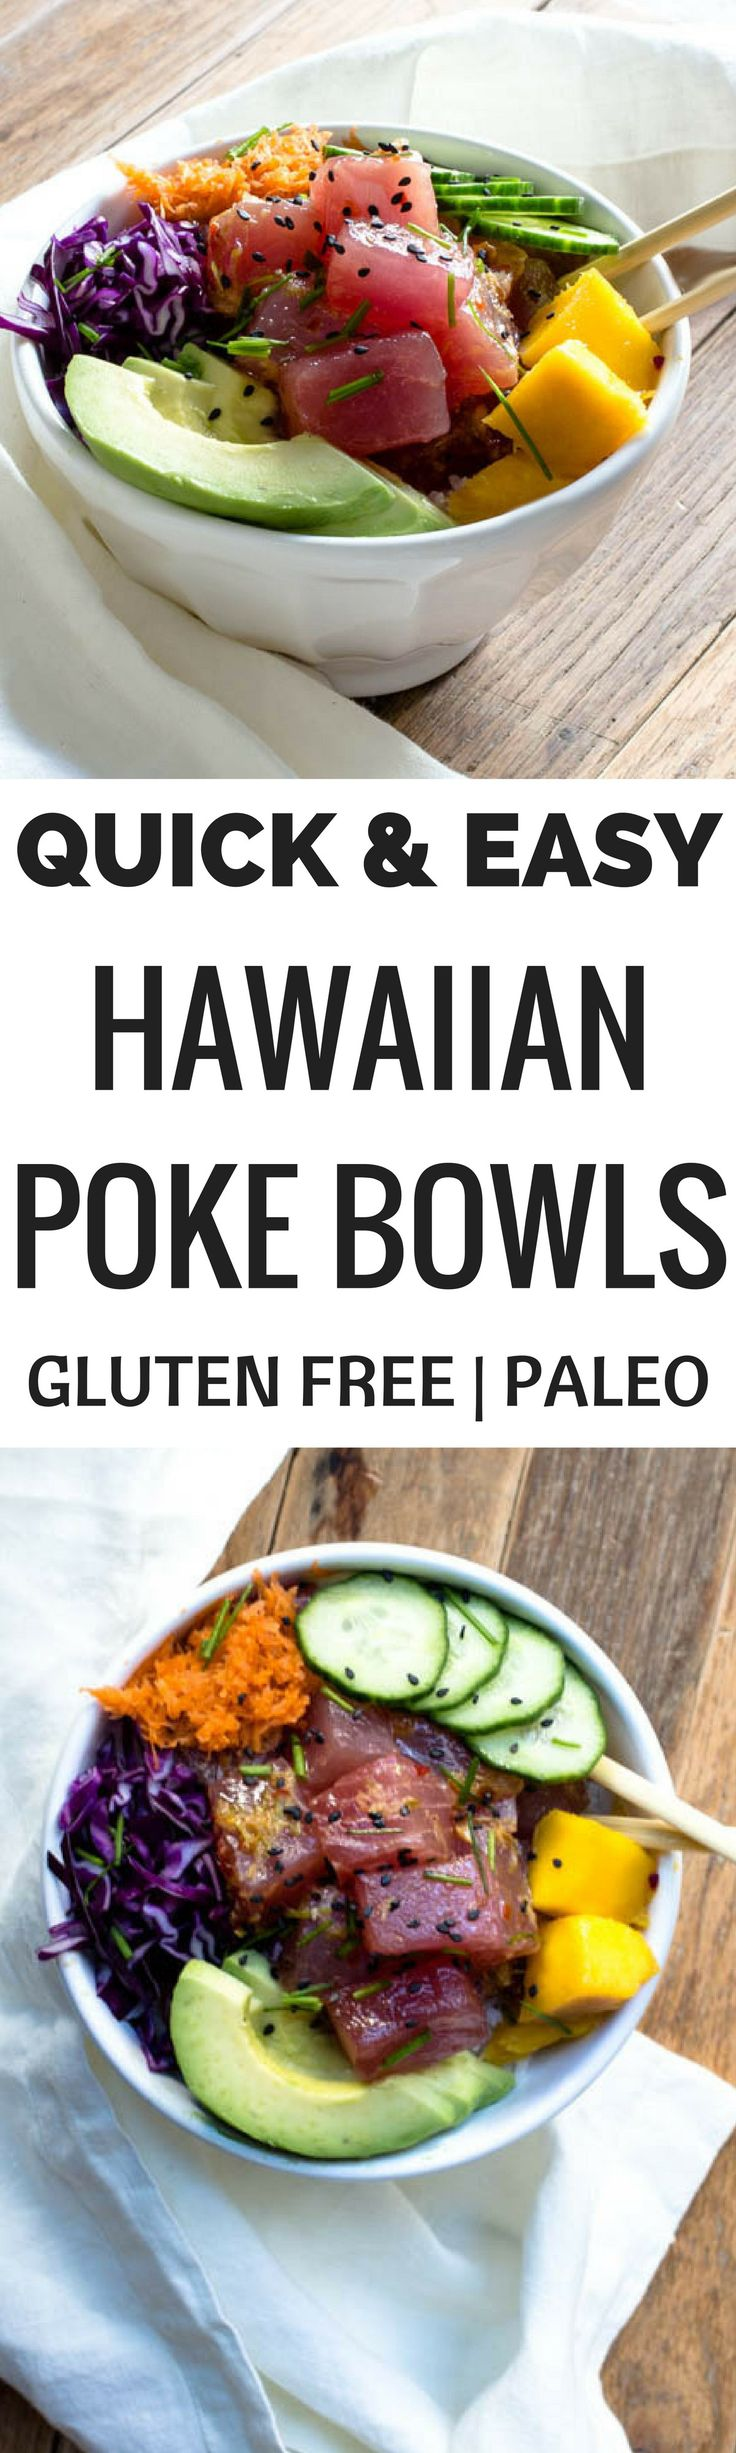 Quick and easy Hawaiian poke bowls recipe. Paleo poke bowls. Healthy, homemade, gluten free poke bowl recipe. Tuna poke bowls. How to make the perfect poke bowl at home!